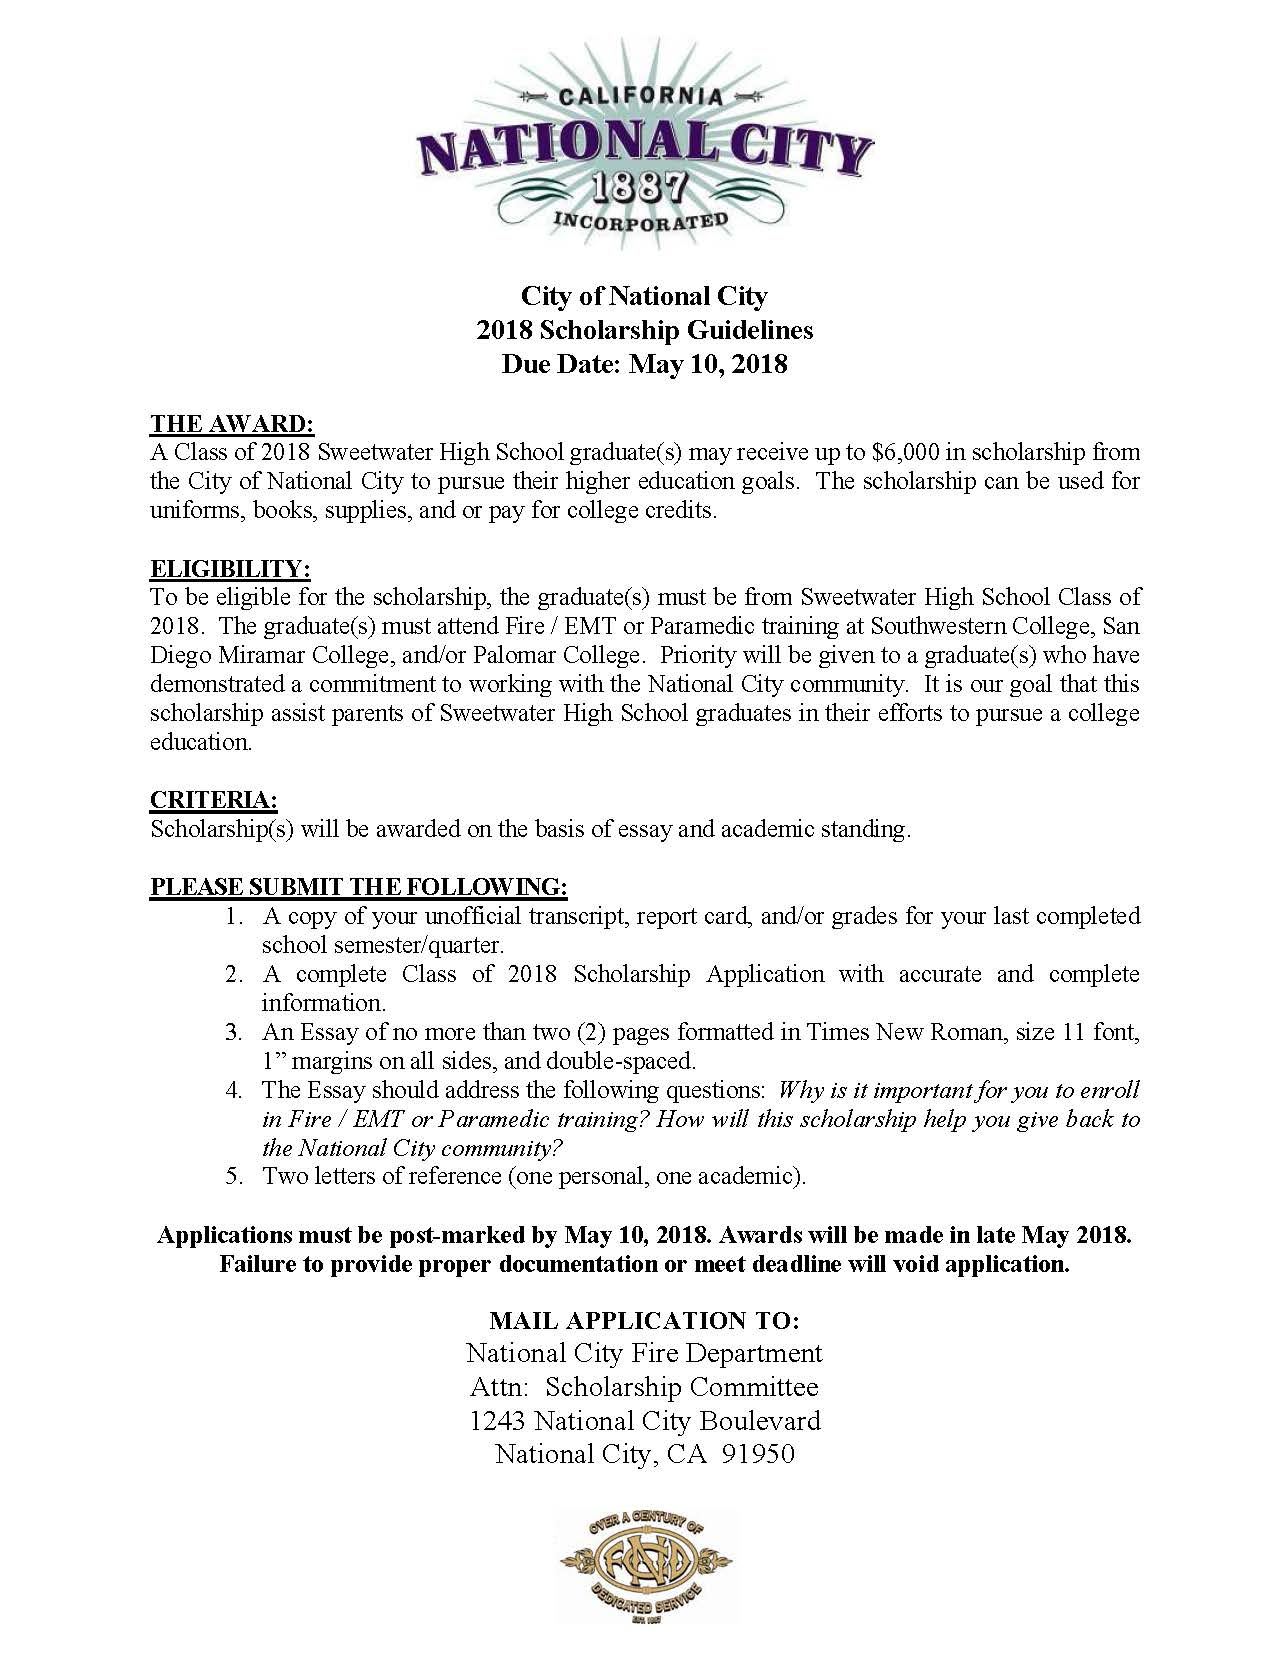 019 No Essay Scholarships For College Students Example Get National City Showimageid4967t6365912738803 Awful 2019 Full